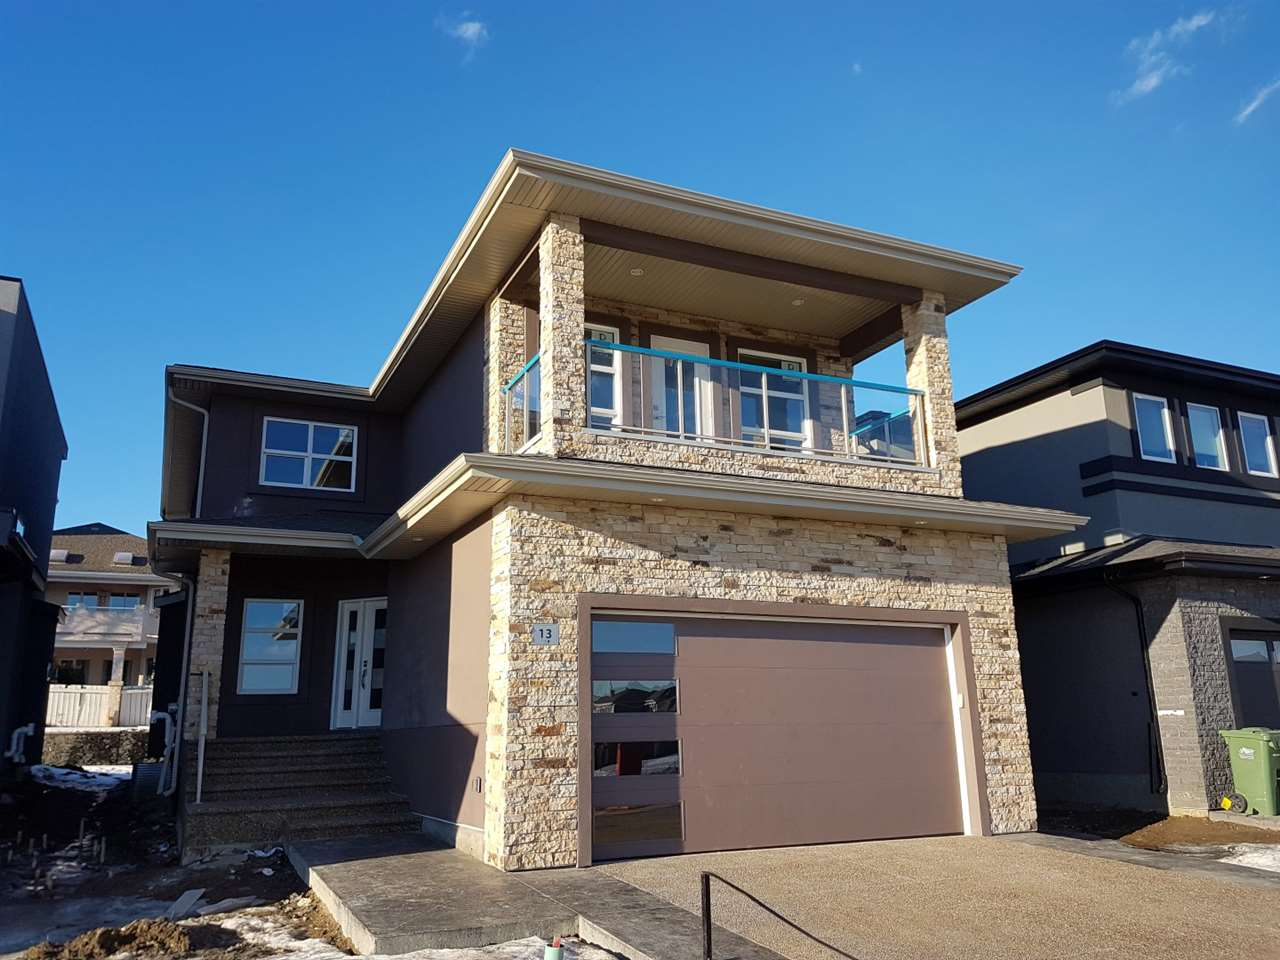 Main Photo: 13 ORCHARD Court: St. Albert House for sale : MLS® # E4059150